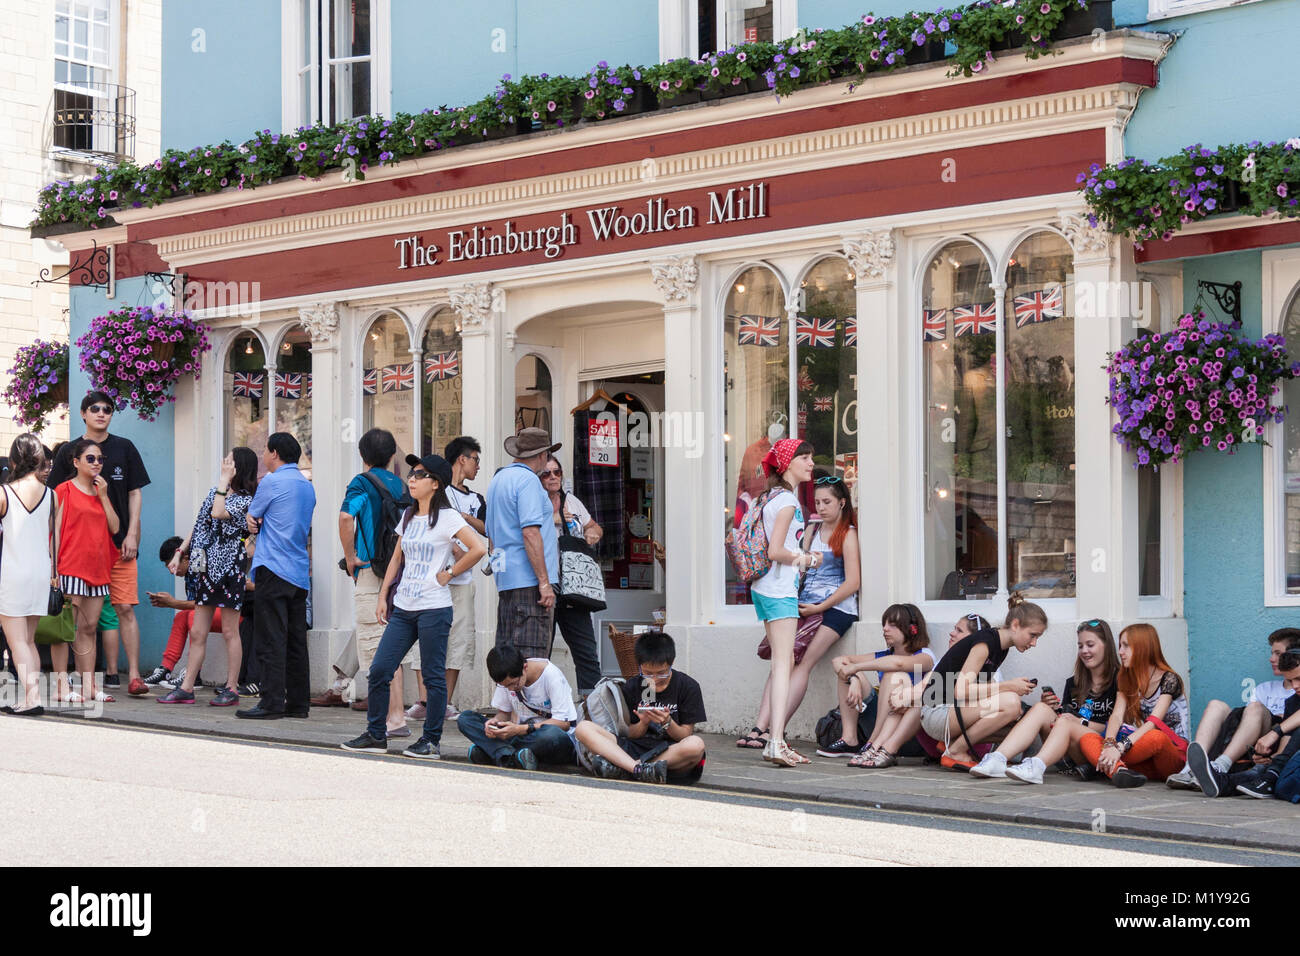 Access to 'The Edinburgh Woollen Mill' shop opposite Windsor Castle made difficult by tourists blocking - Stock Image